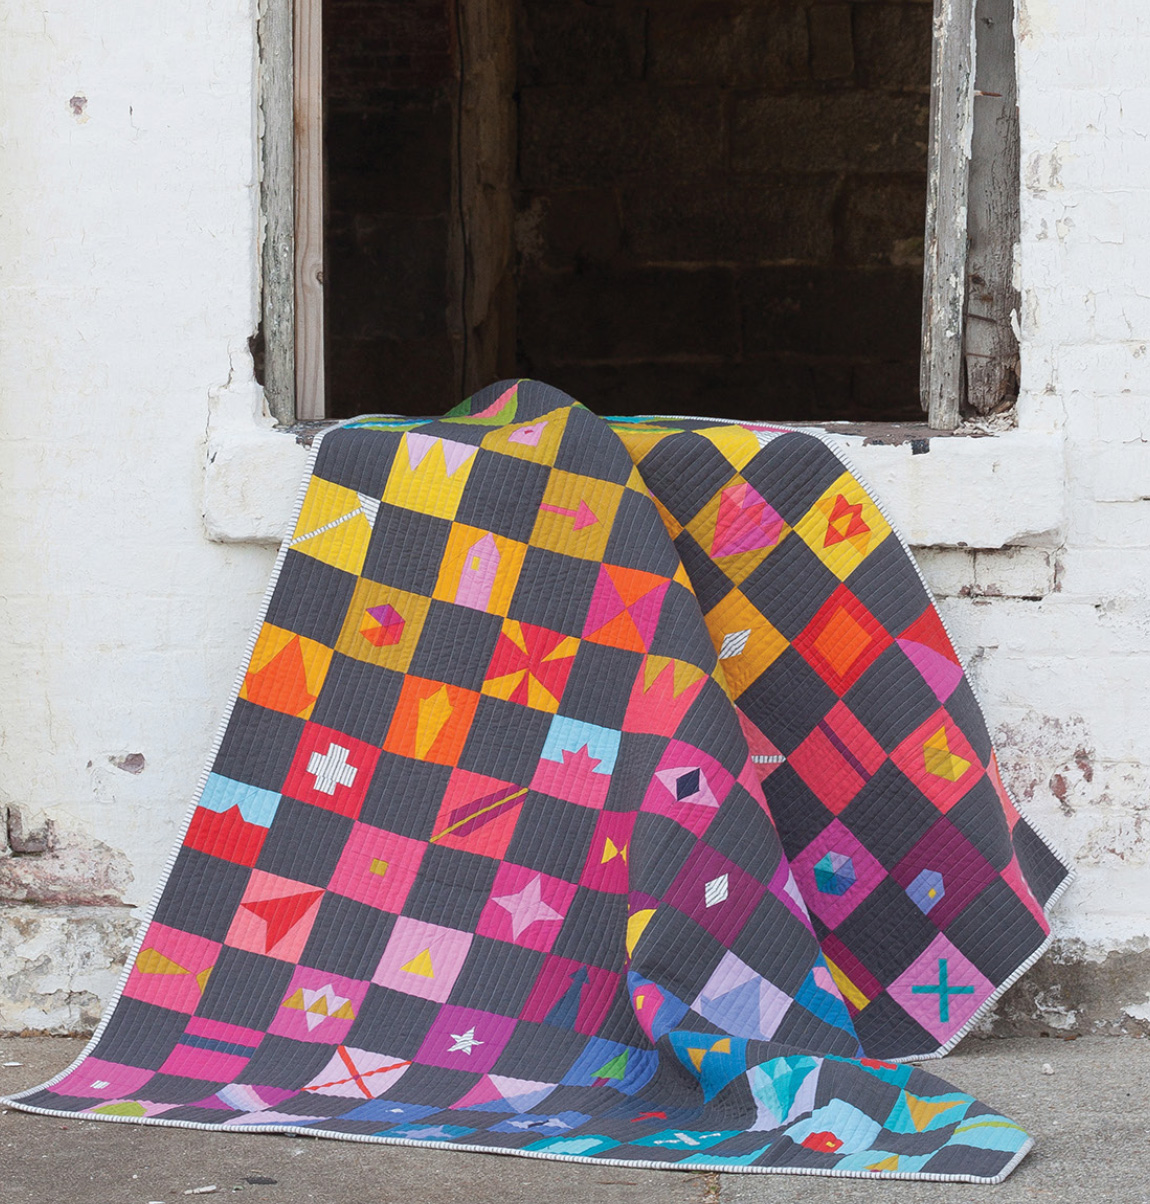 trinket quilt pattern sold by Color Girl Quilts